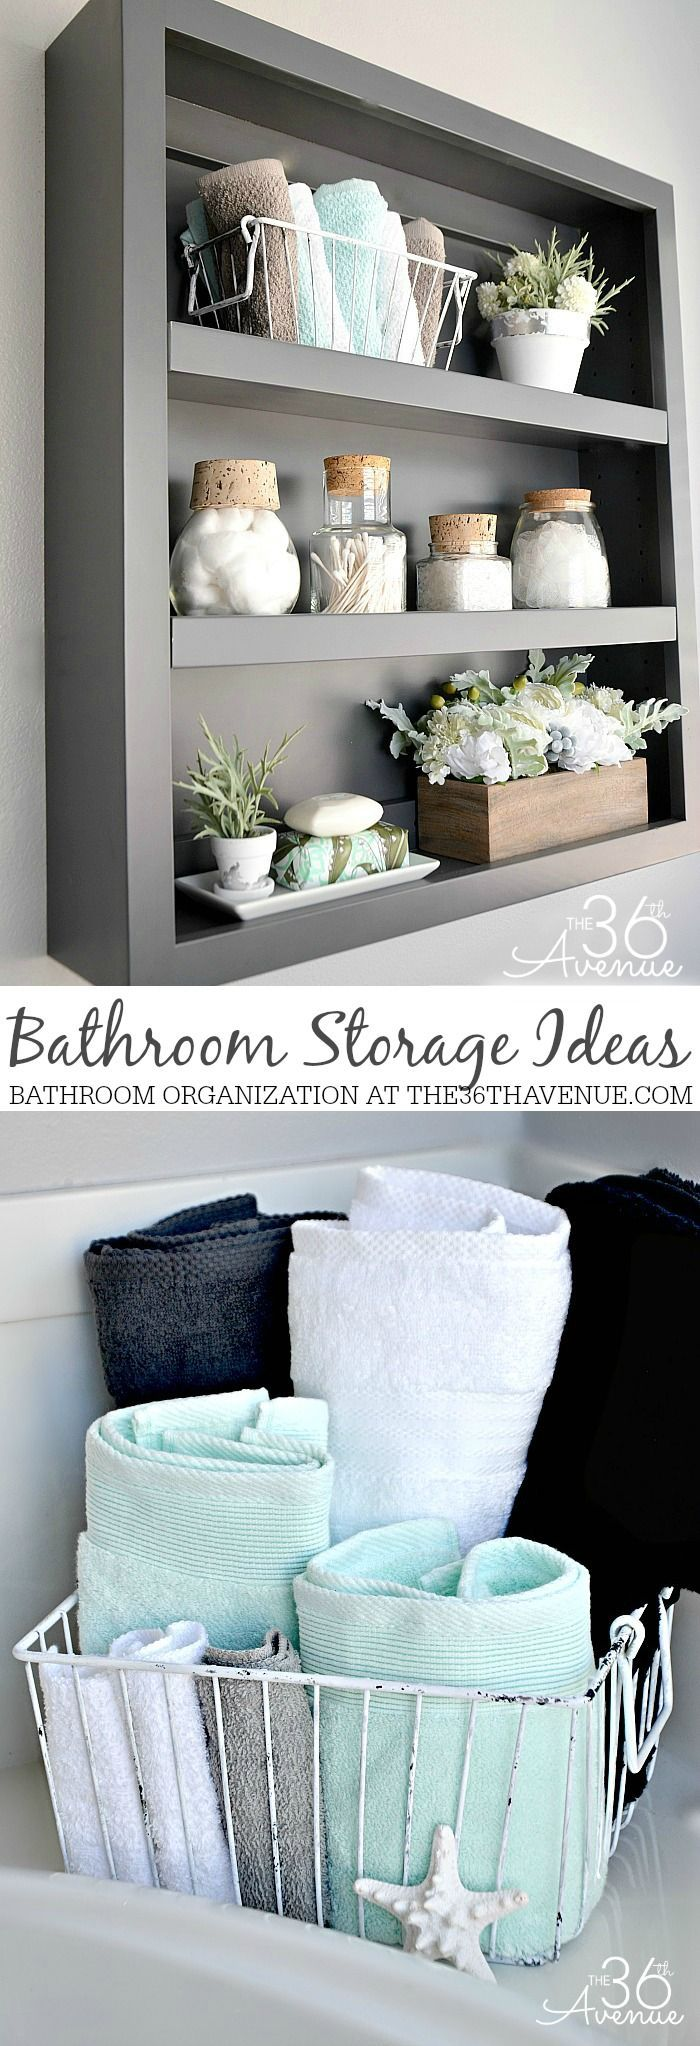 best 25+ bathroom accessories ideas on pinterest | apartment